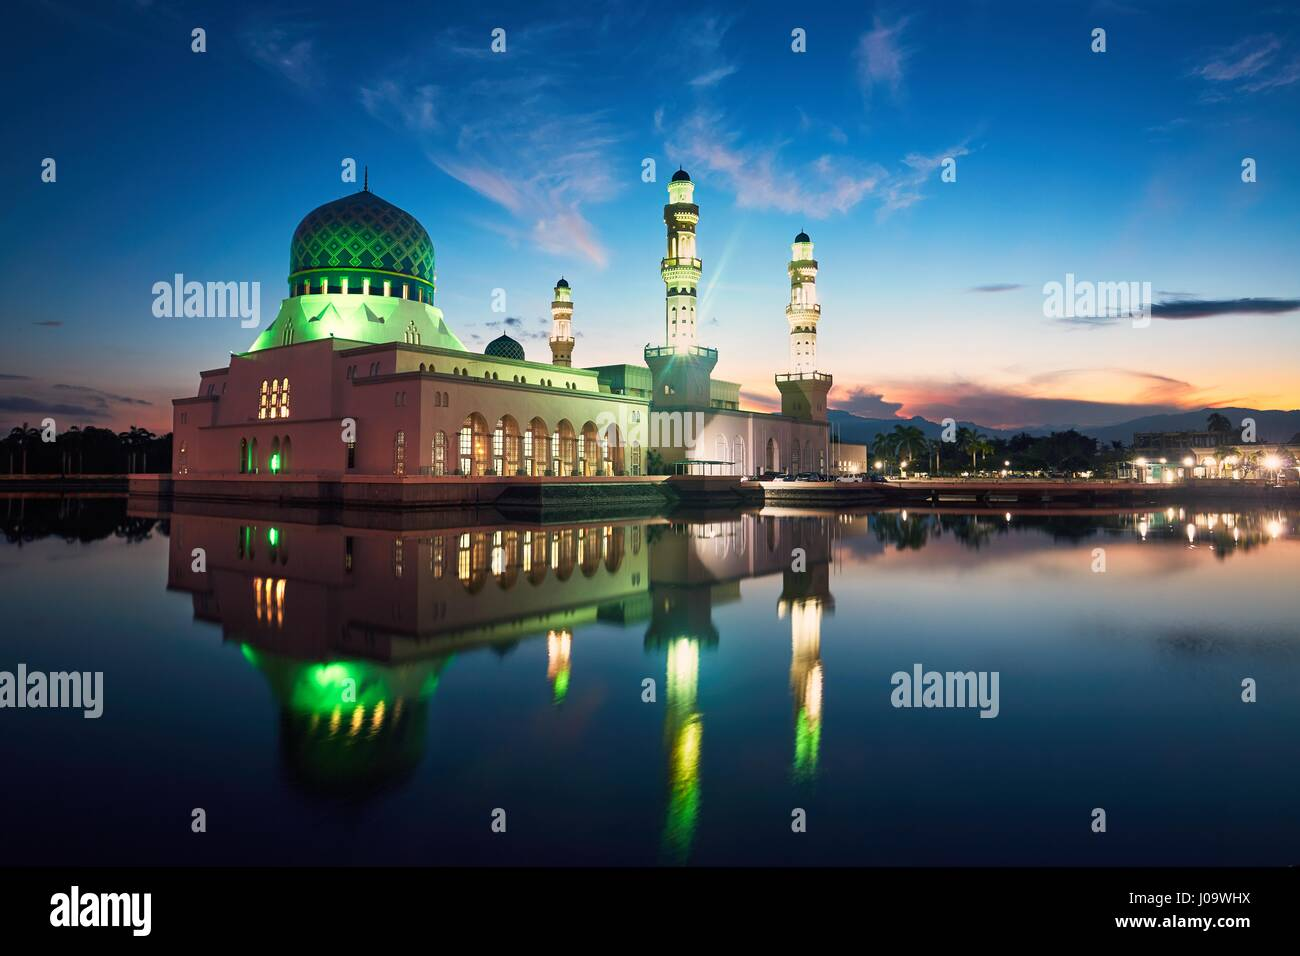 Reflection of Kota Kinabalu City Mosque, Island of Borneo, Malaysia - Stock Image